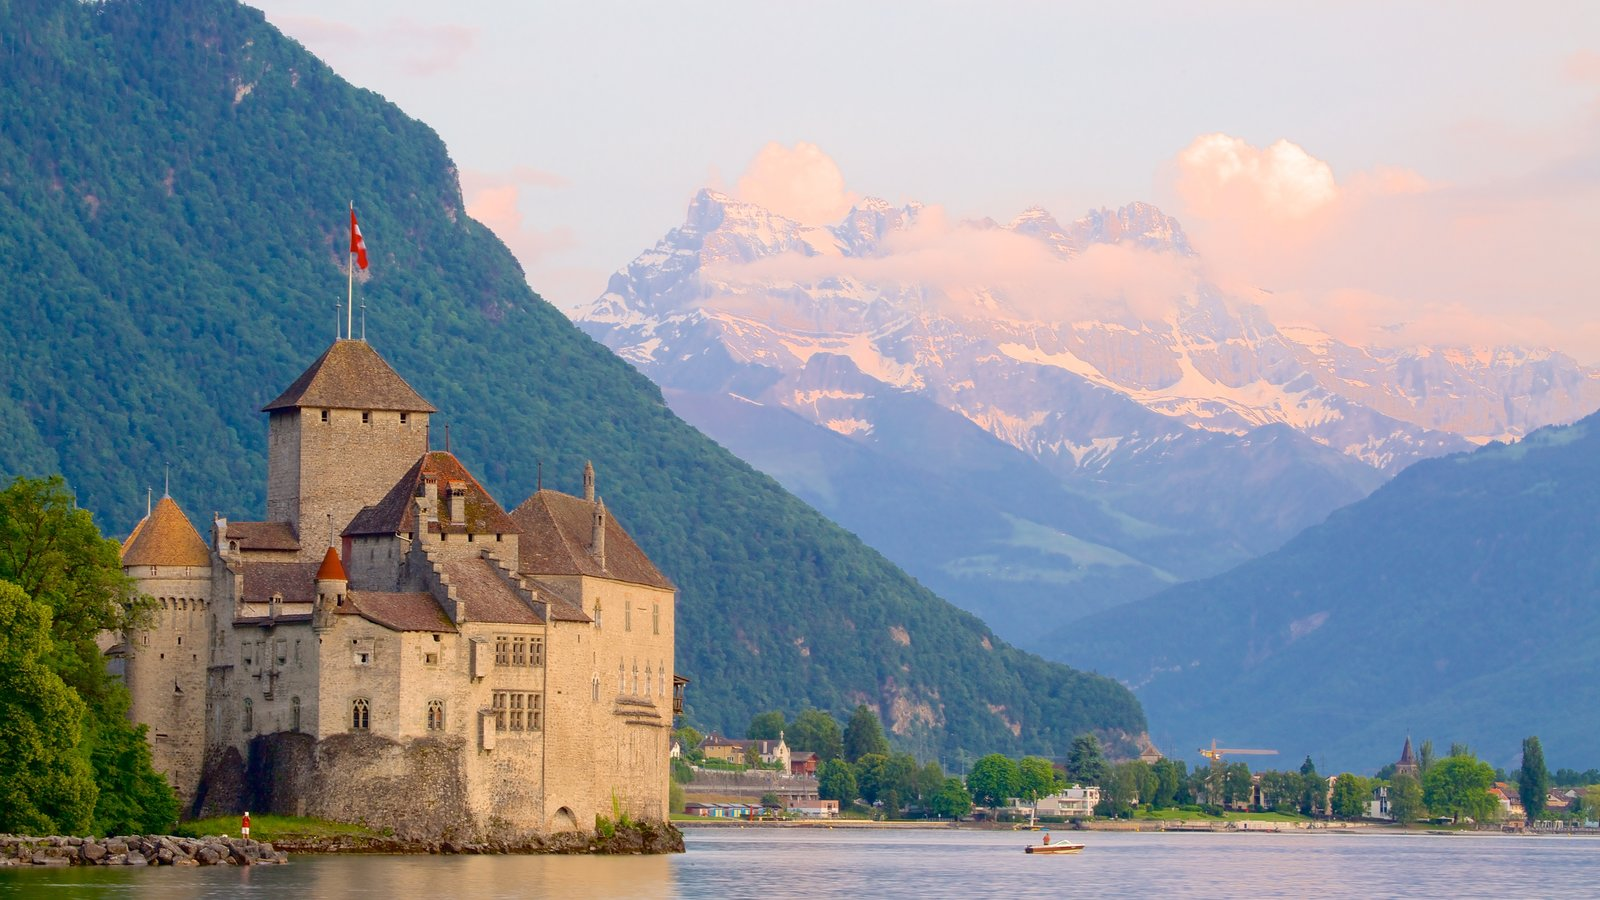 Chateau de Chillon which includes a castle, a lake or waterhole and mountains